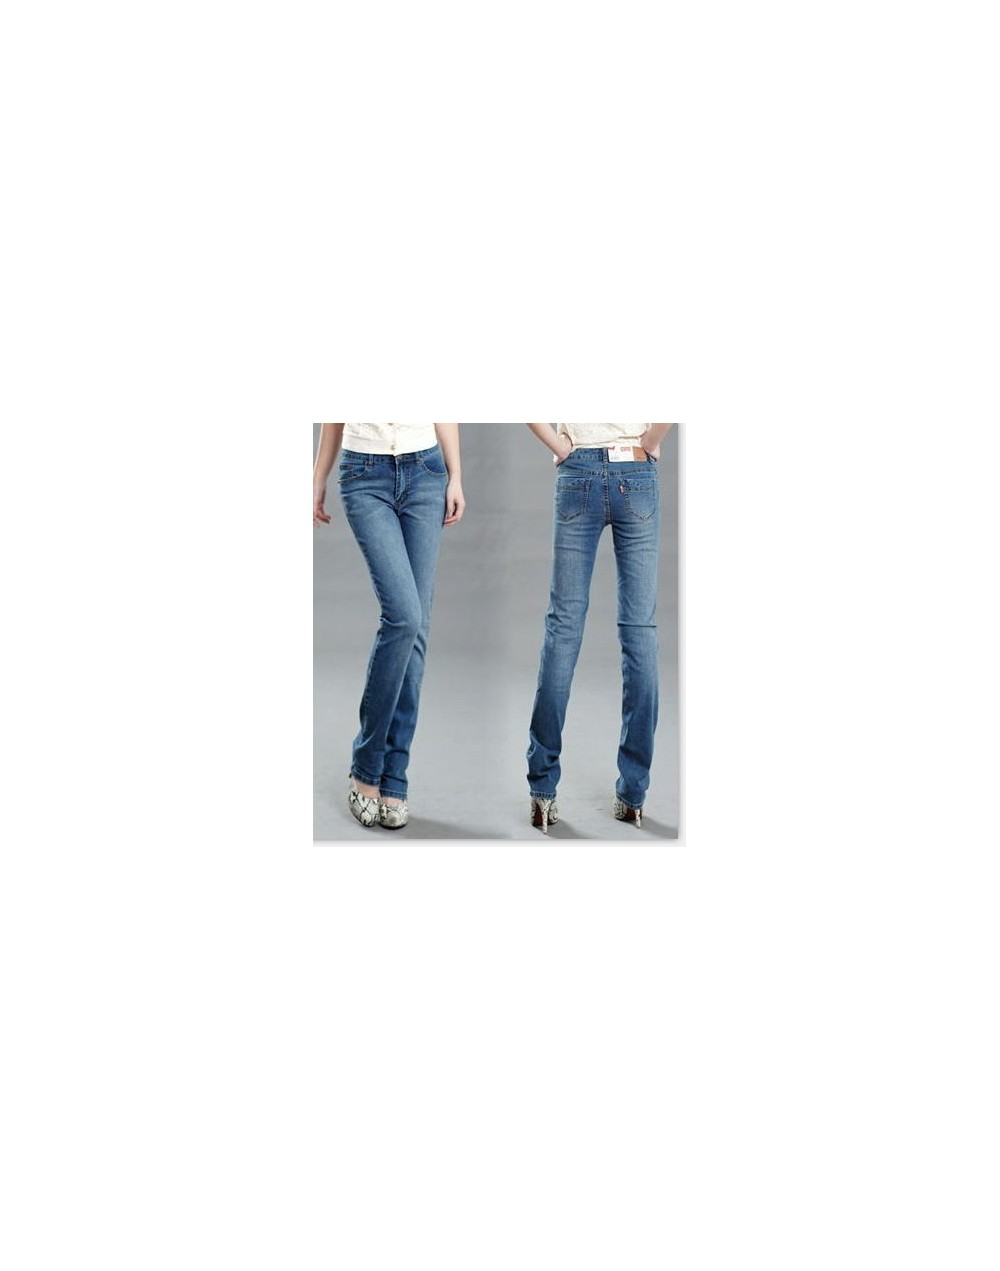 2016 spring and summer women's Mid High waist denim pants small straight elastic jeans plus size Denim Trousers - light blue...